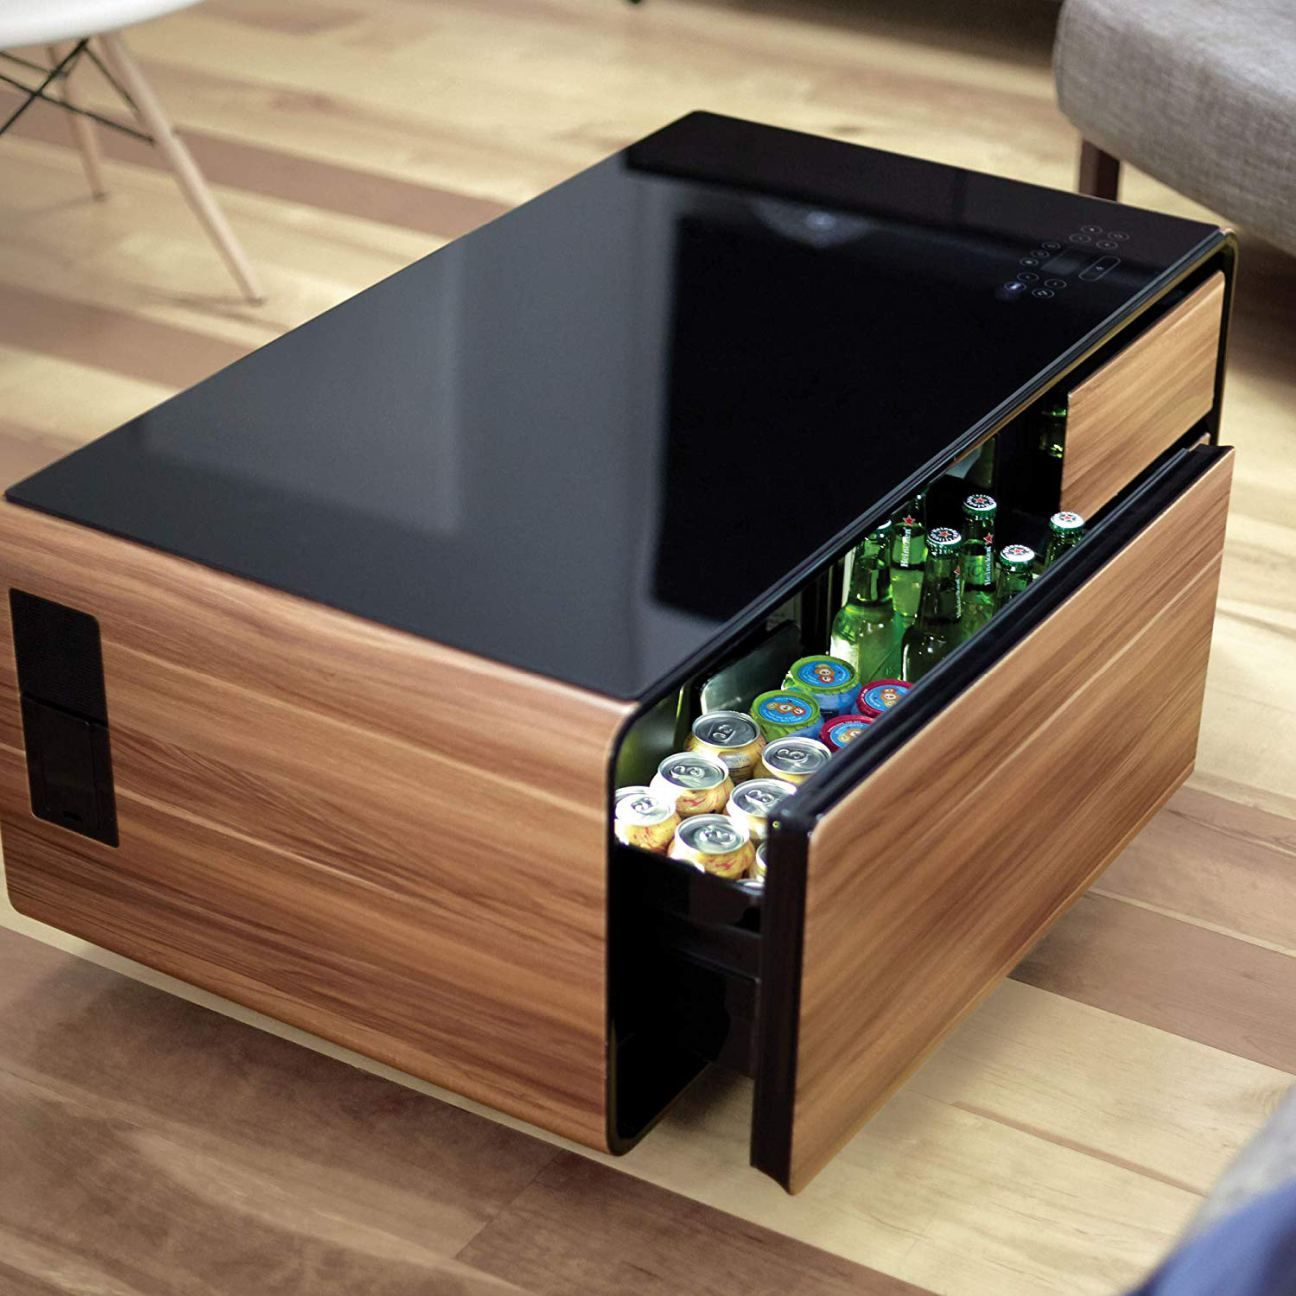 71Ahi8Dr5AL._SL1500_ Coffee table with storage, Tea